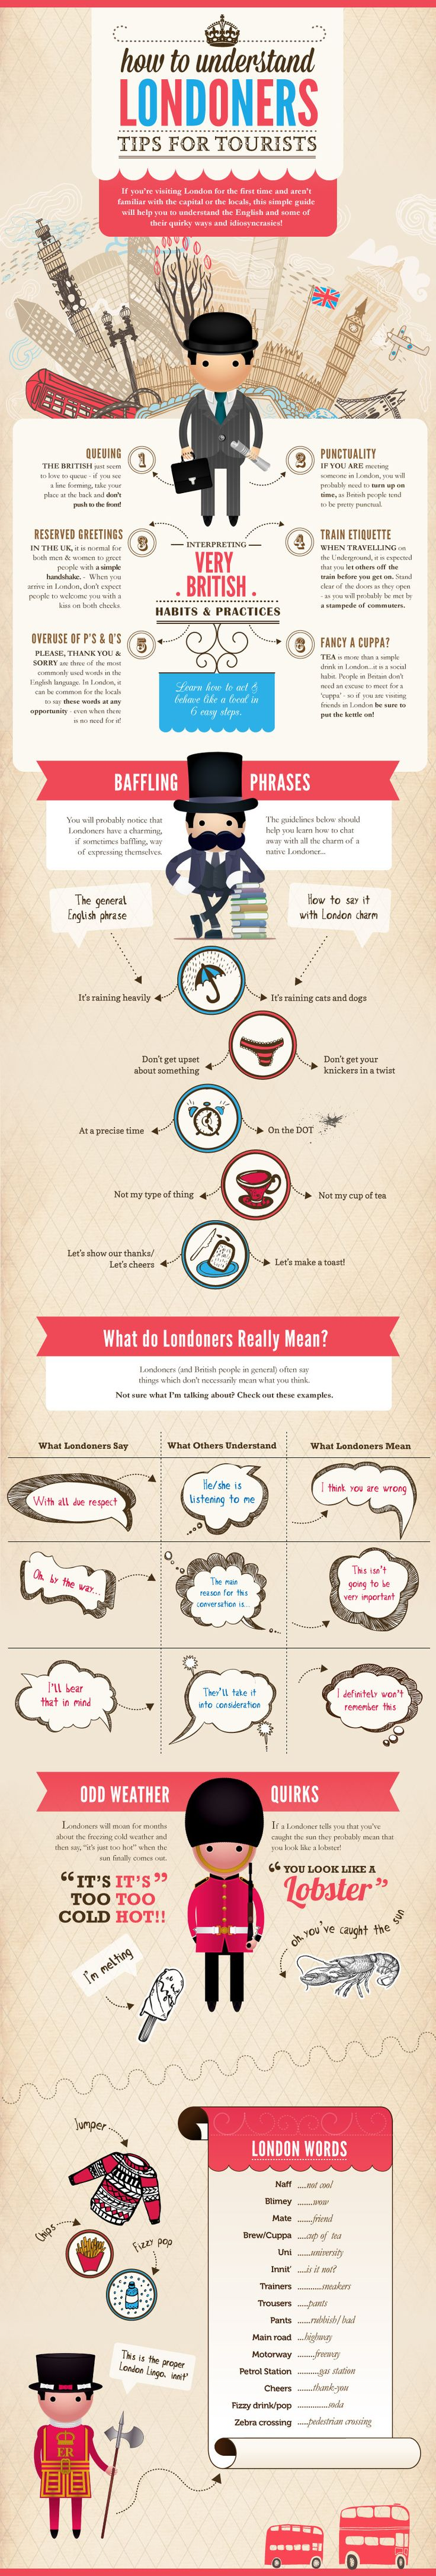 How to Understand Londoners #infographic #Tourism #infografía